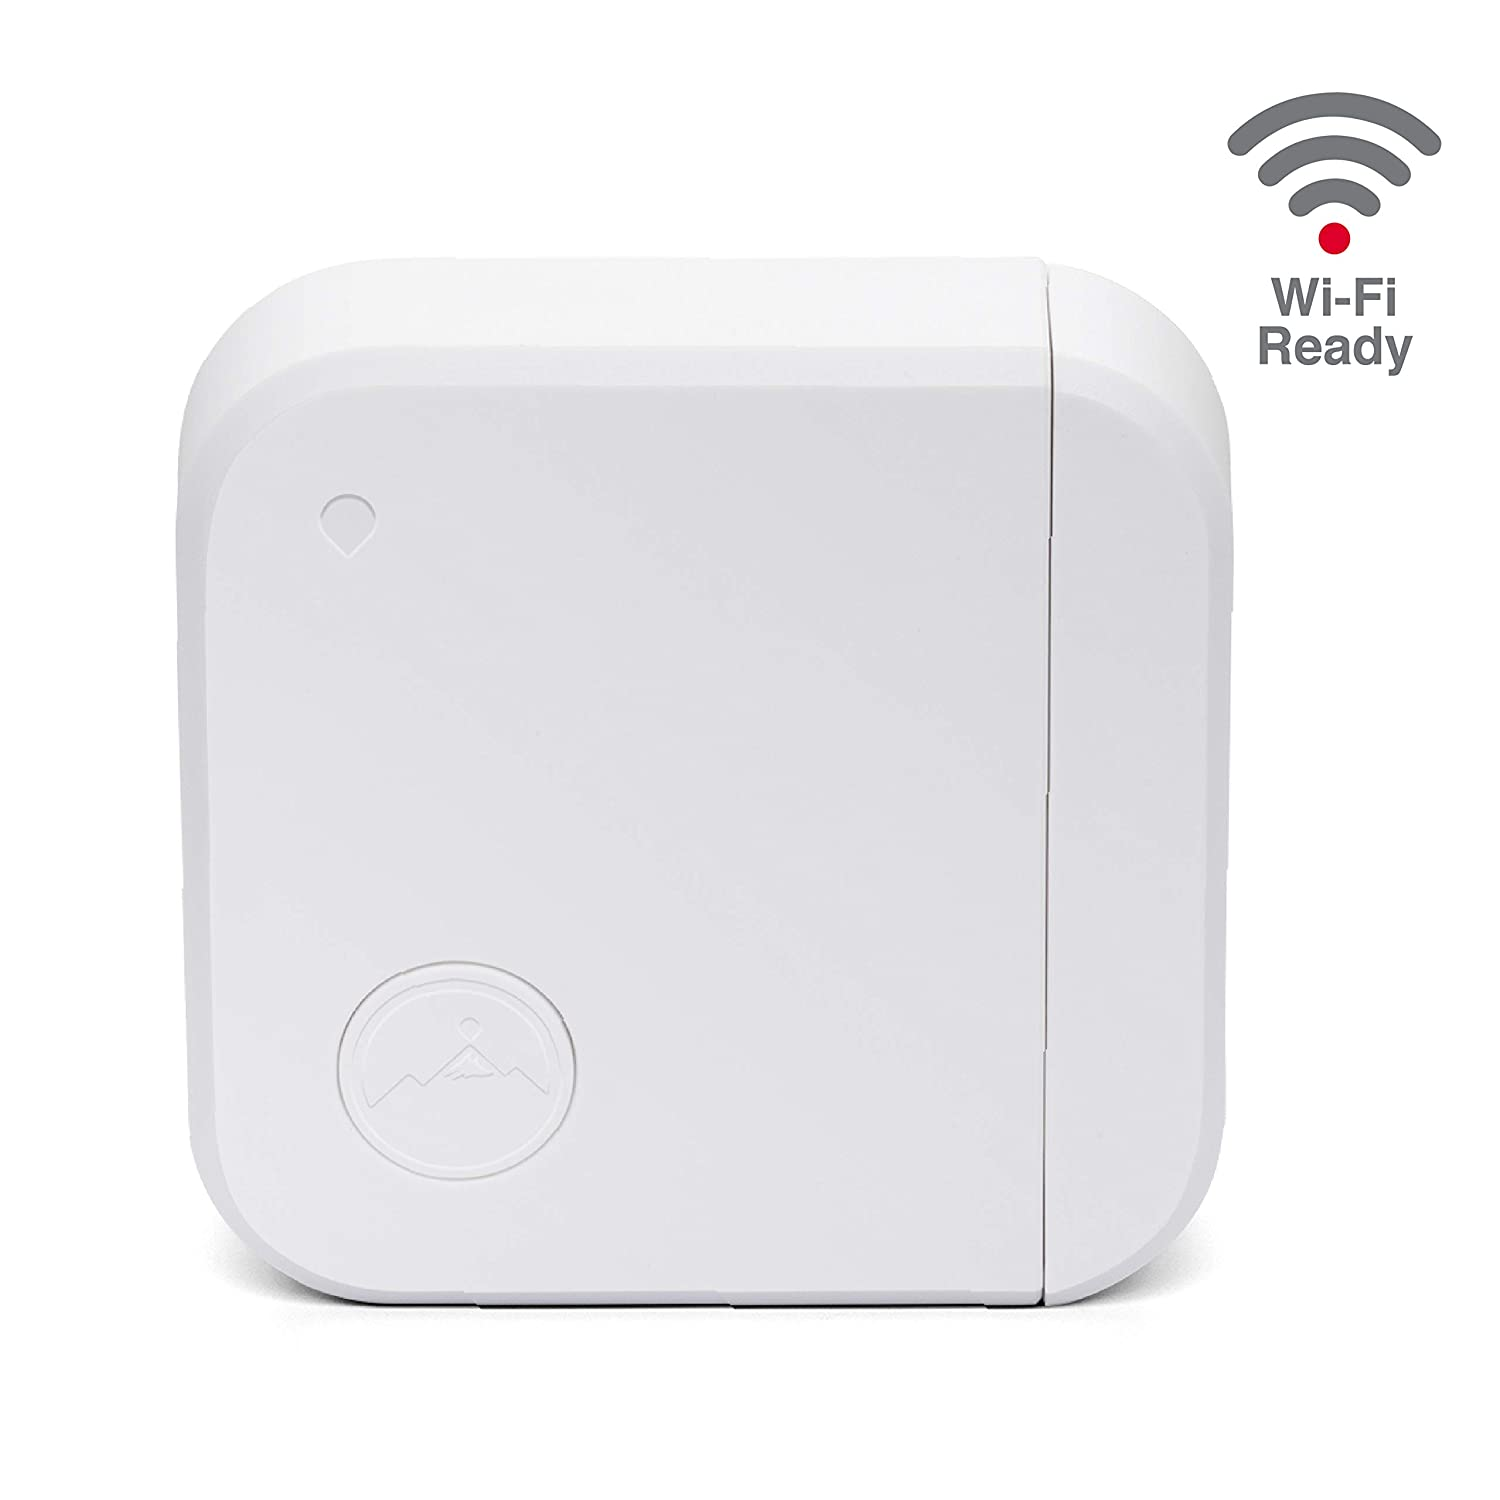 Fox Summit 2nd Generation WiFi Window Door Sensor with Built-in Chime, WiFi Enabled Battery Operated Smart Sensor, Security Door Sensor, No Hub Required